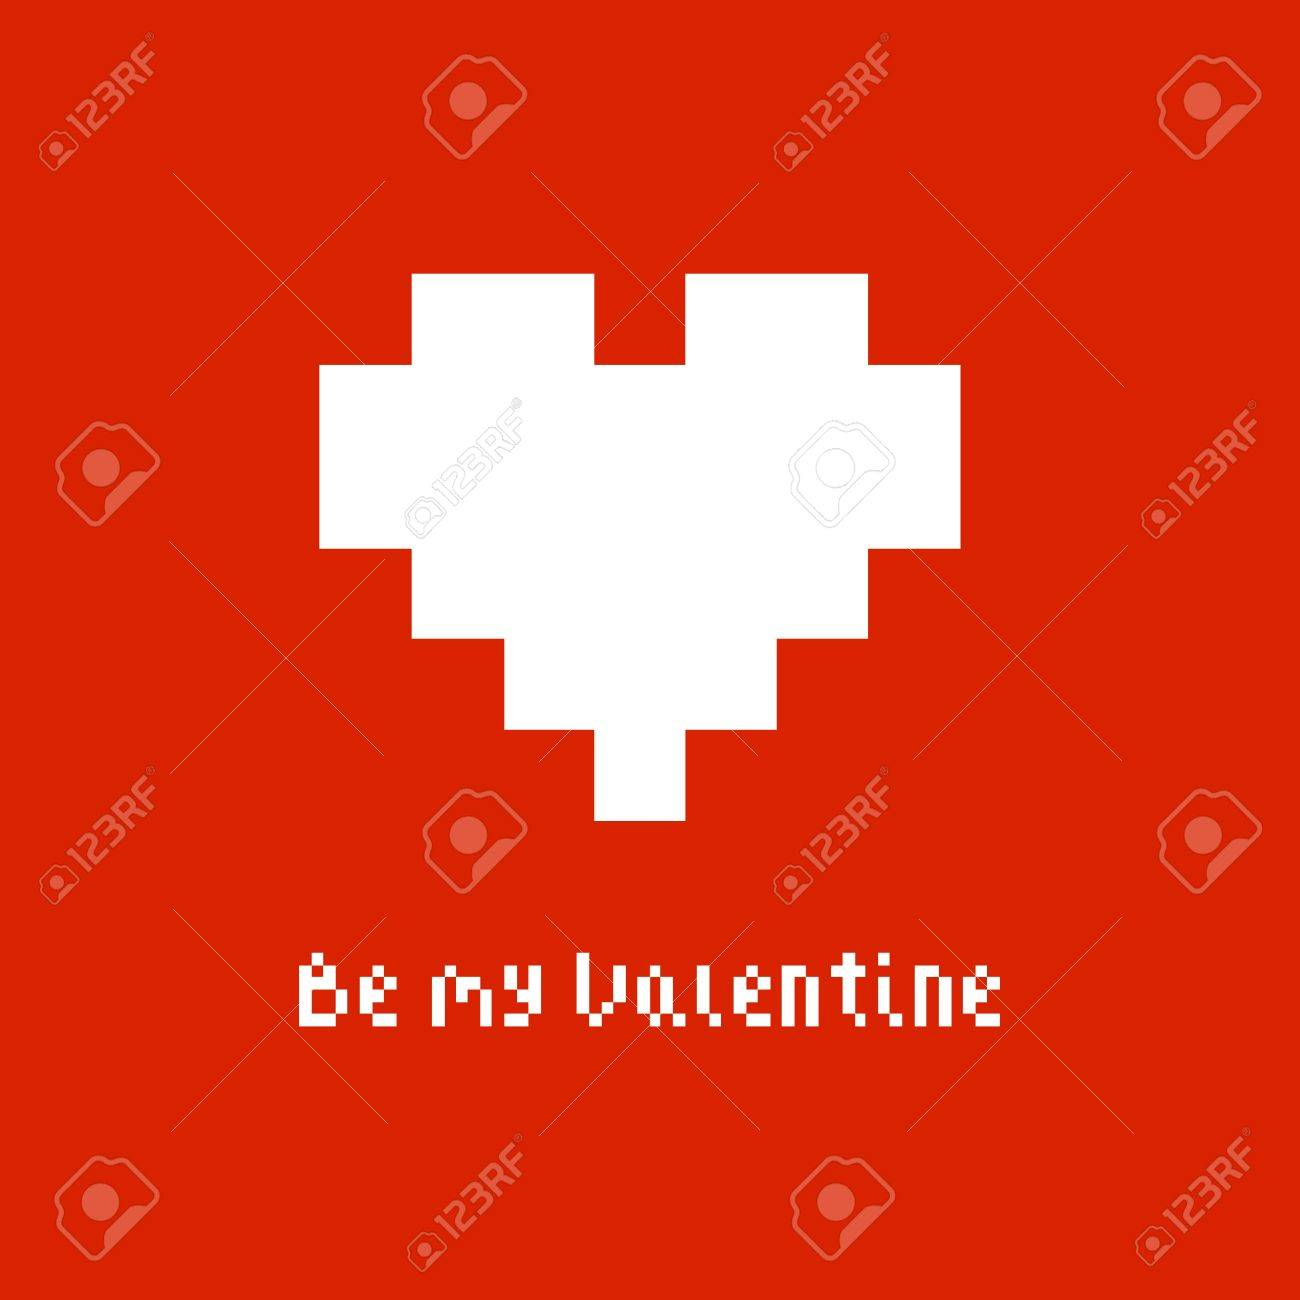 Simple Gift Card For A Valentines Day In Pixel Art Style Vector